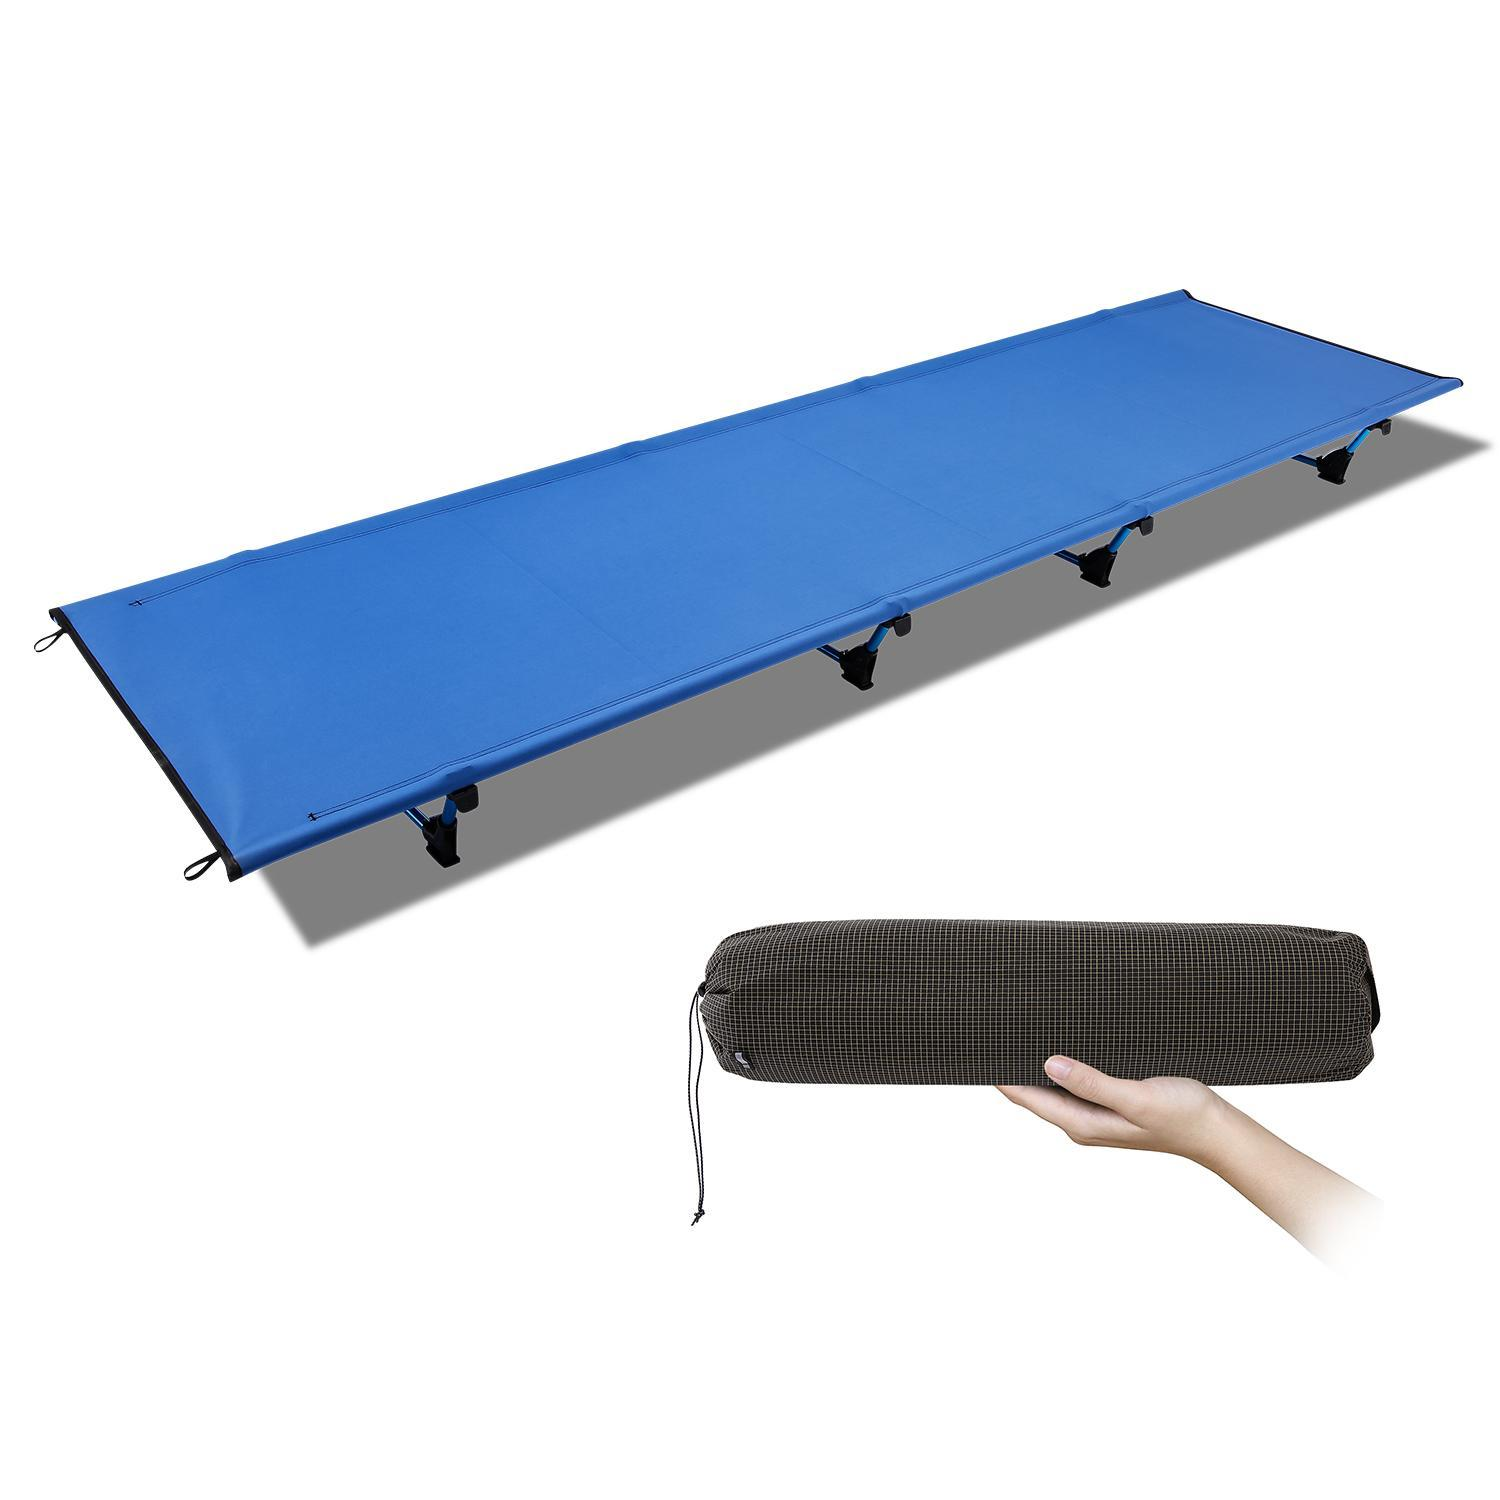 Folding Camping Cot Hunting Bed CEAER by